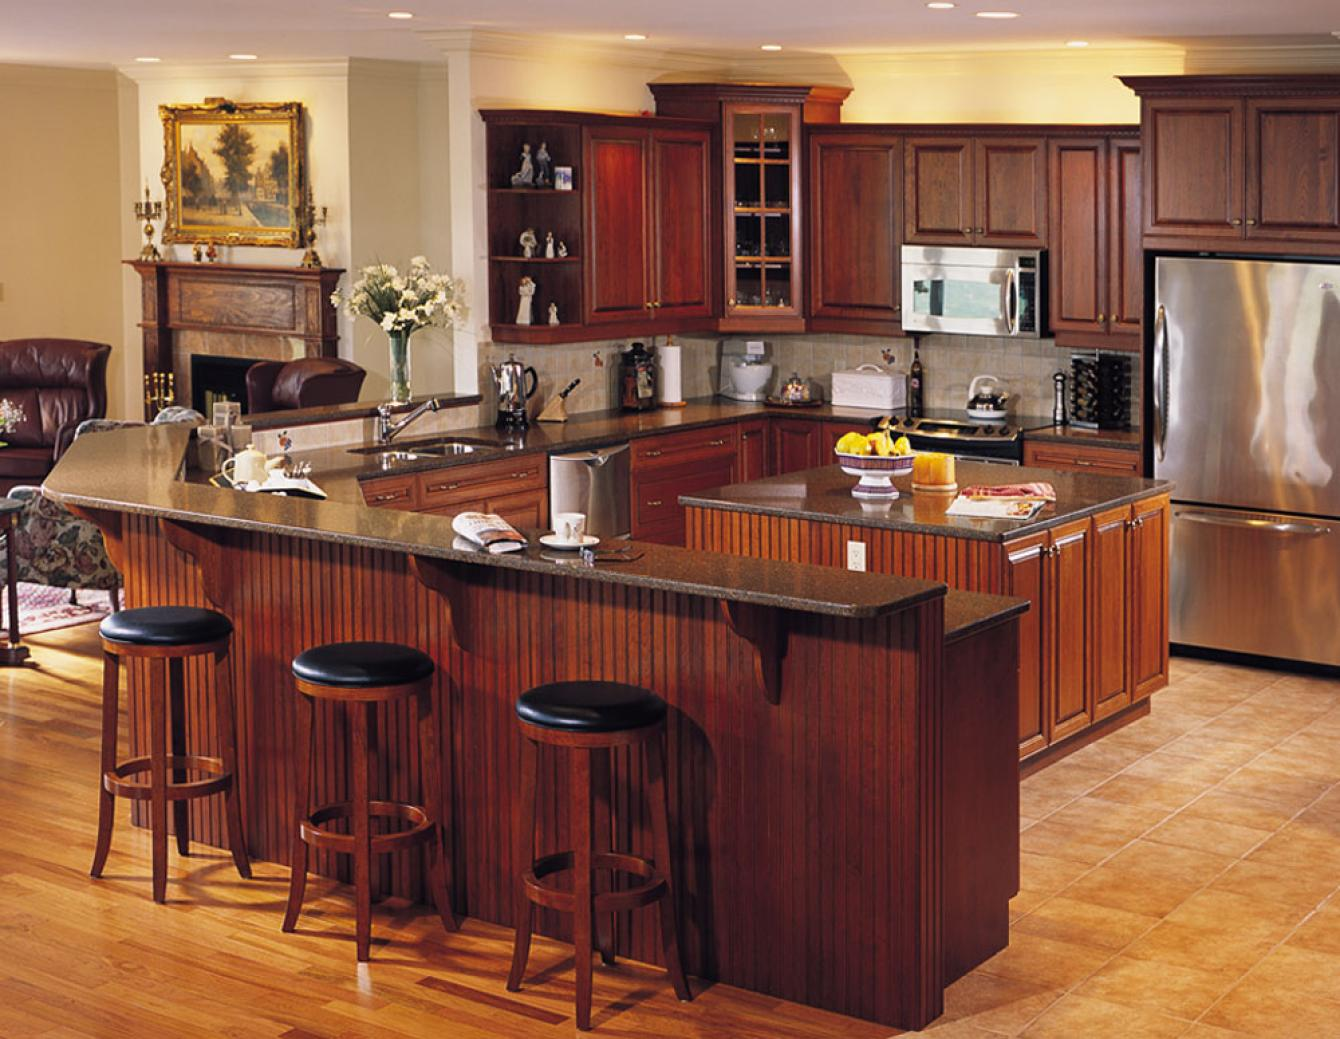 Kitchen design gallery triangle kitchen for Kitchen design ideas photo gallery